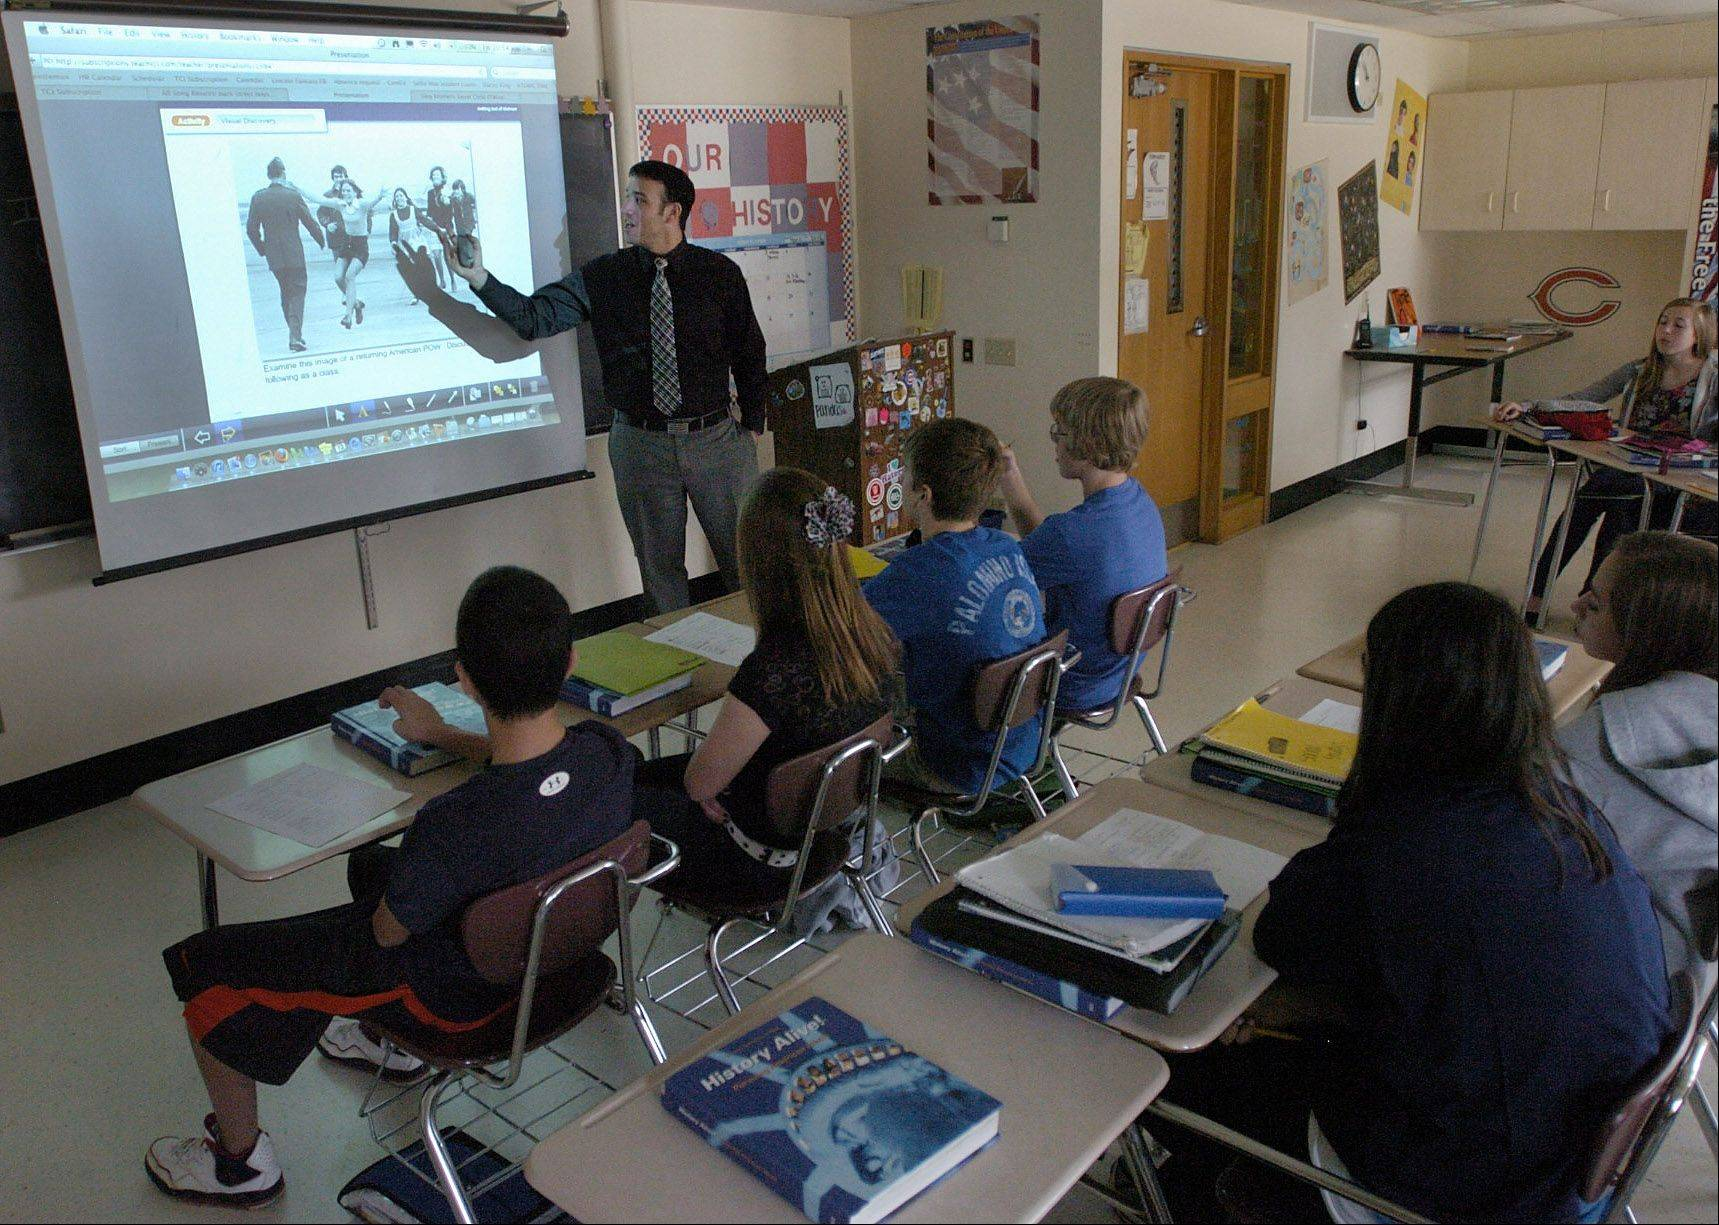 Dominick Lupo and his eighth grade class at Lincoln Middle School study the Vietnam War through the school's History Alive social studies curriculum program. Mount Prospect Elementary School District 57 plans to upgrade the interactive curriculum next year in hopes of getting students more interested in studying history.